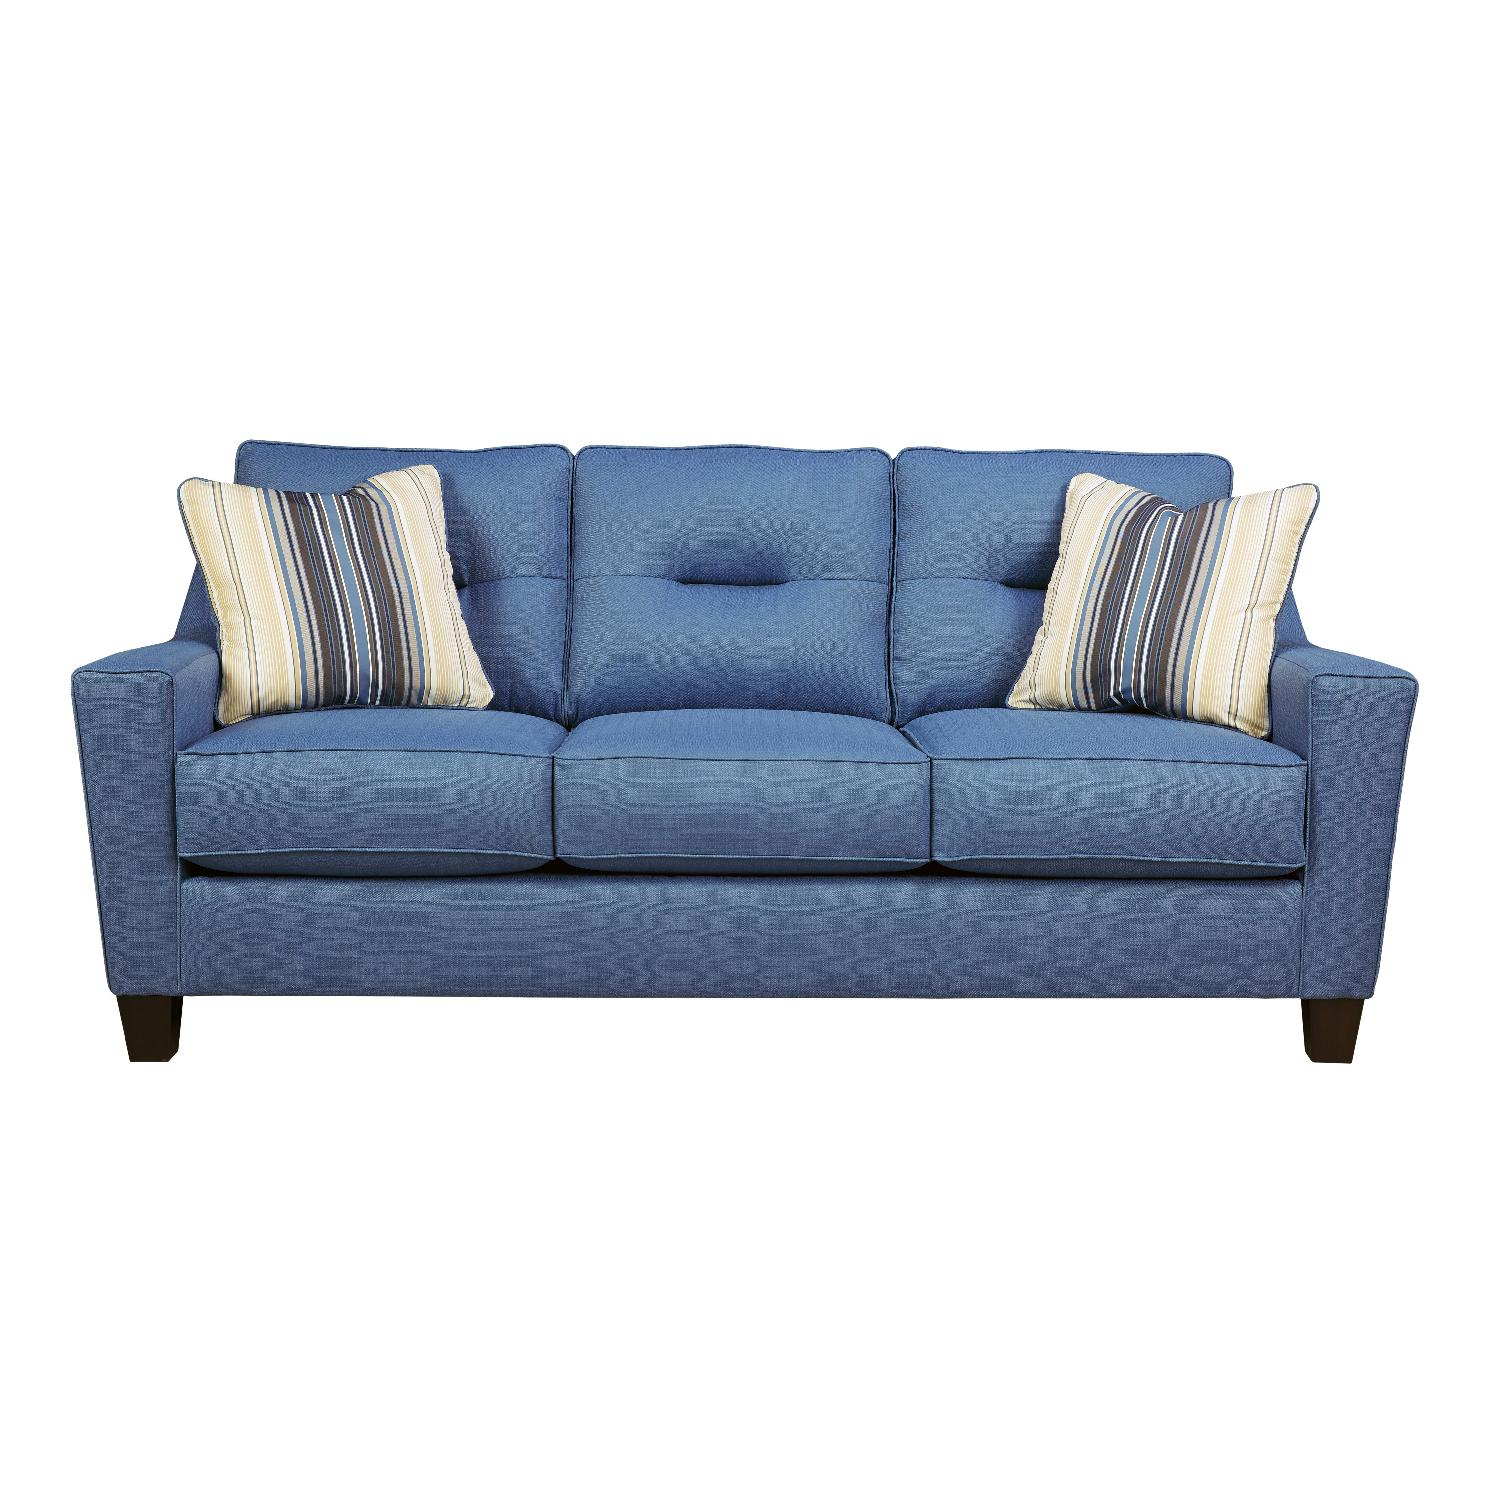 Sofa Set Price Rate Ashley 39s Blue Nuvella Sofa Aptdeco